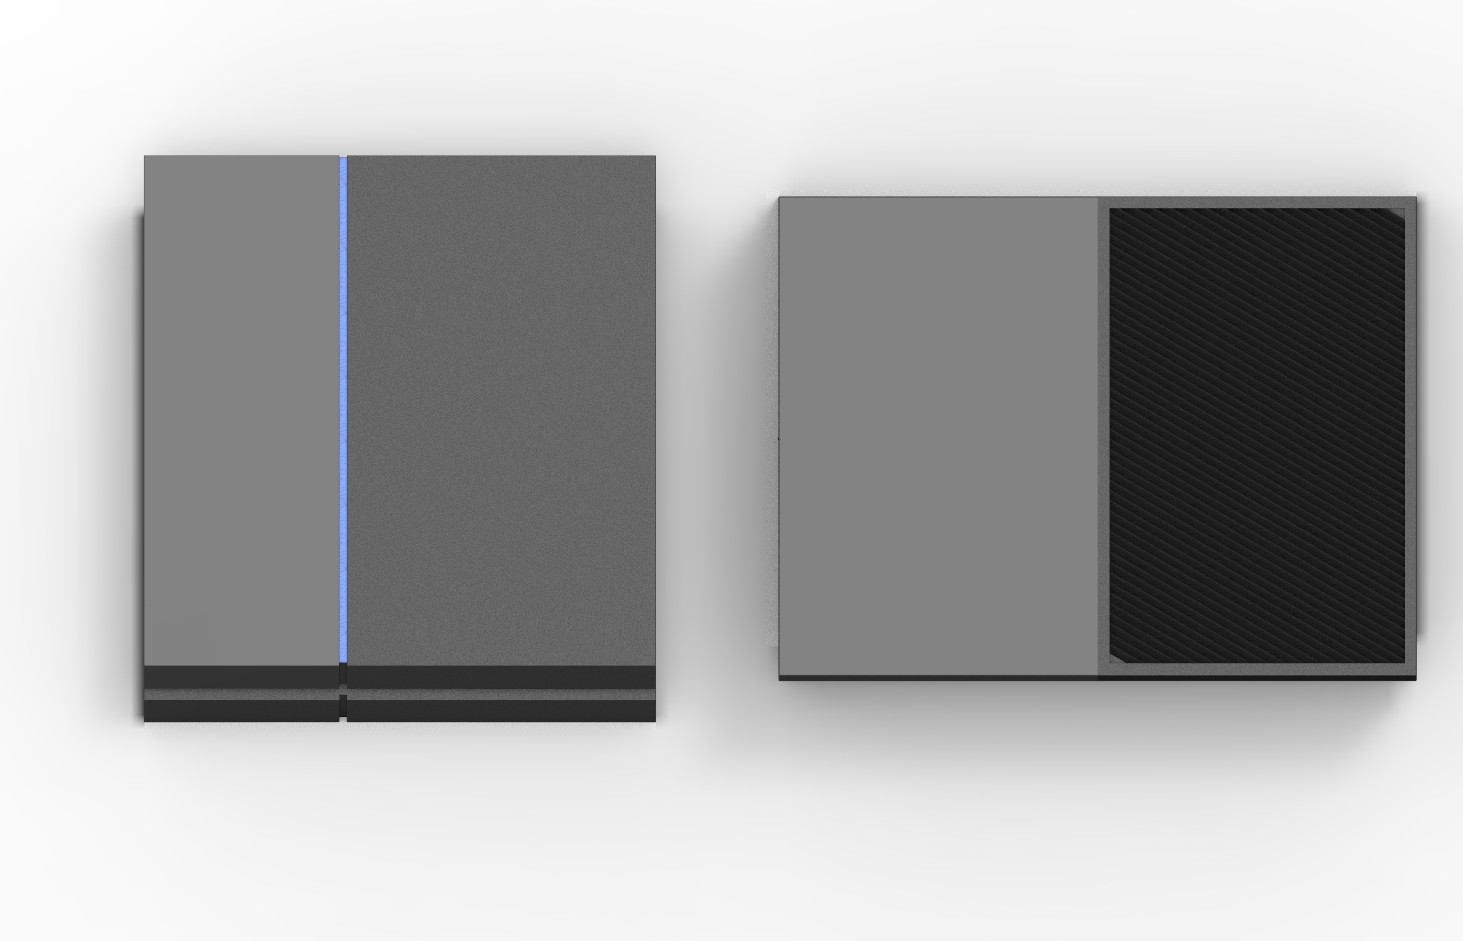 Ps4 vs xbox one console size comparison gamingreality for What is console